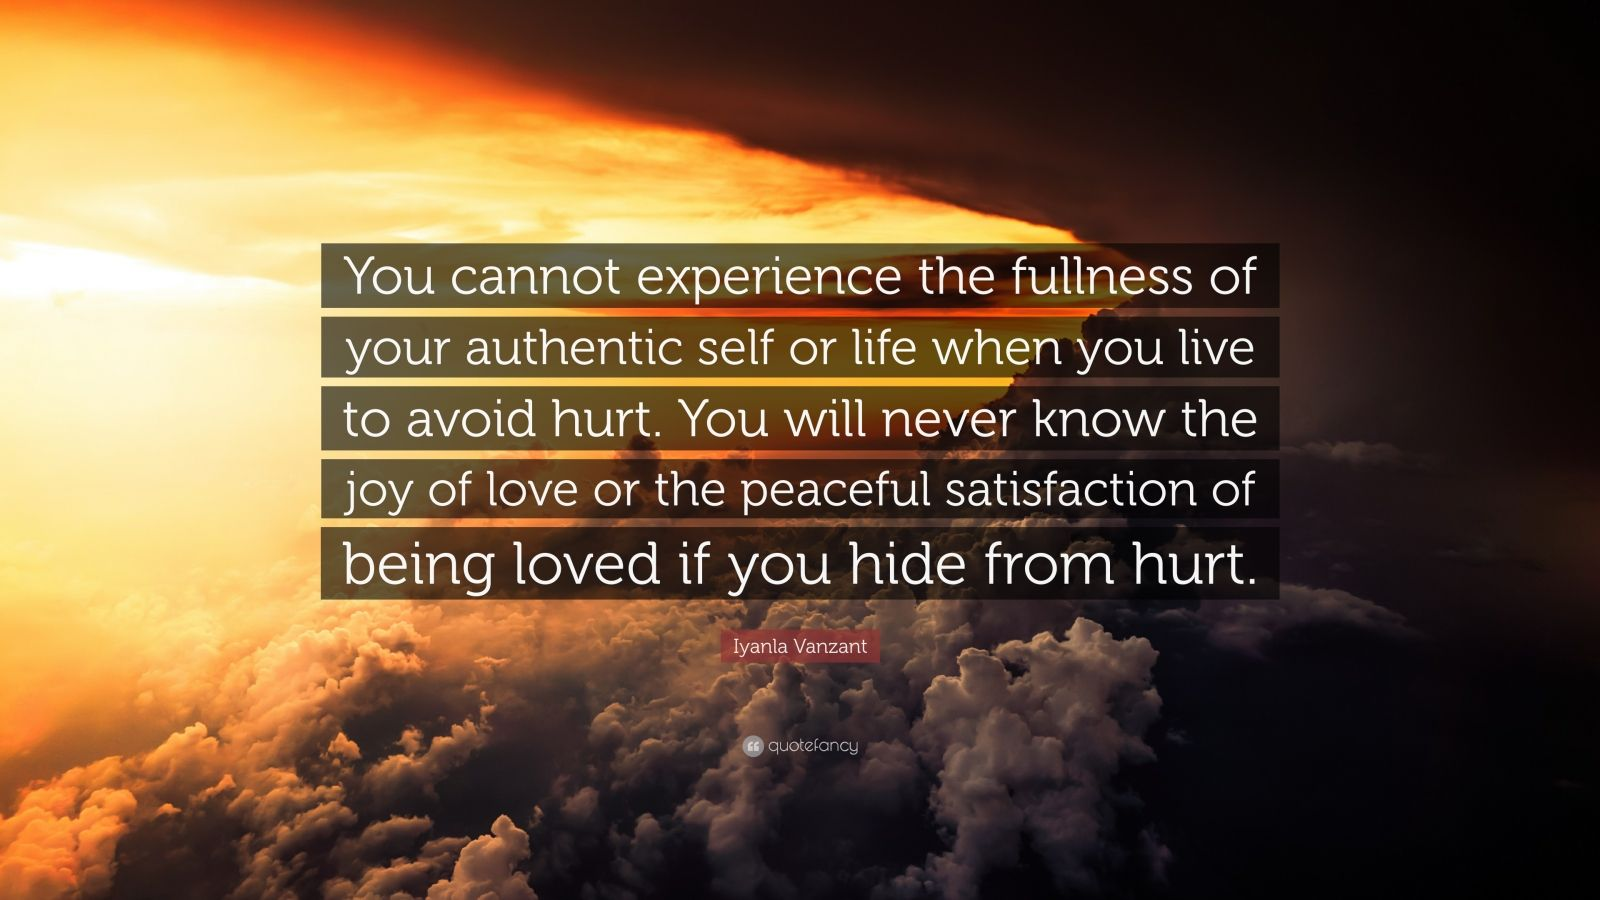 "Iyanla Vanzant Quote: ""You cannot experience the fullness of your authentic self or life when you live to avoid hurt. You will never know the joy of love or the peaceful satisfaction of being loved if you hide from hurt."""